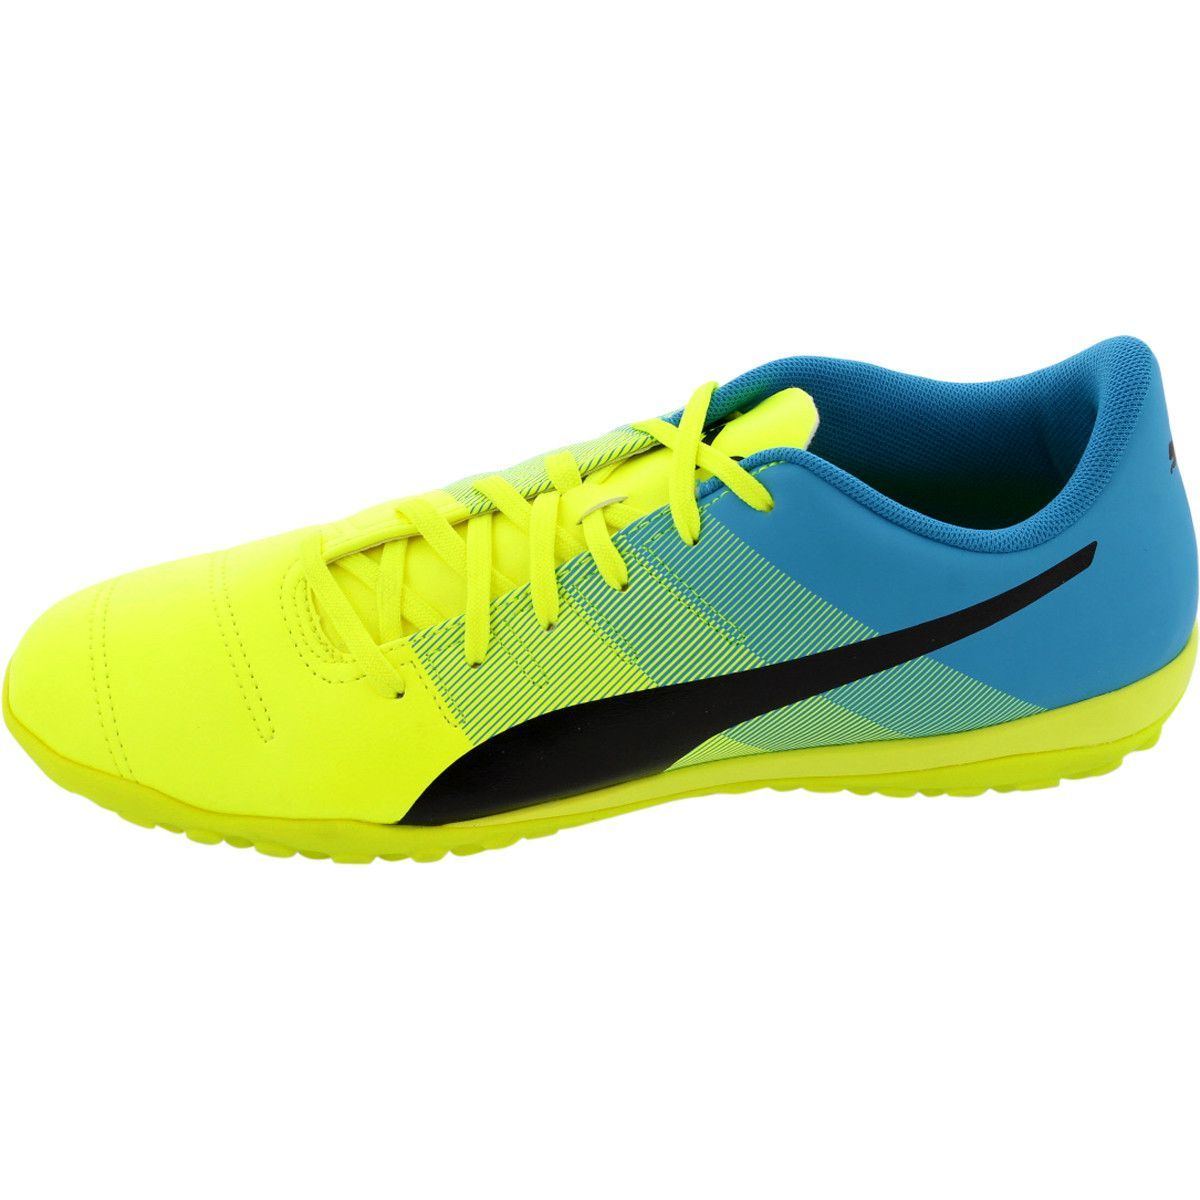 49768c076 Puma - Men's Evopower 4.3 Tt Sneakers - Yellow/Black/Atomic Blue ...